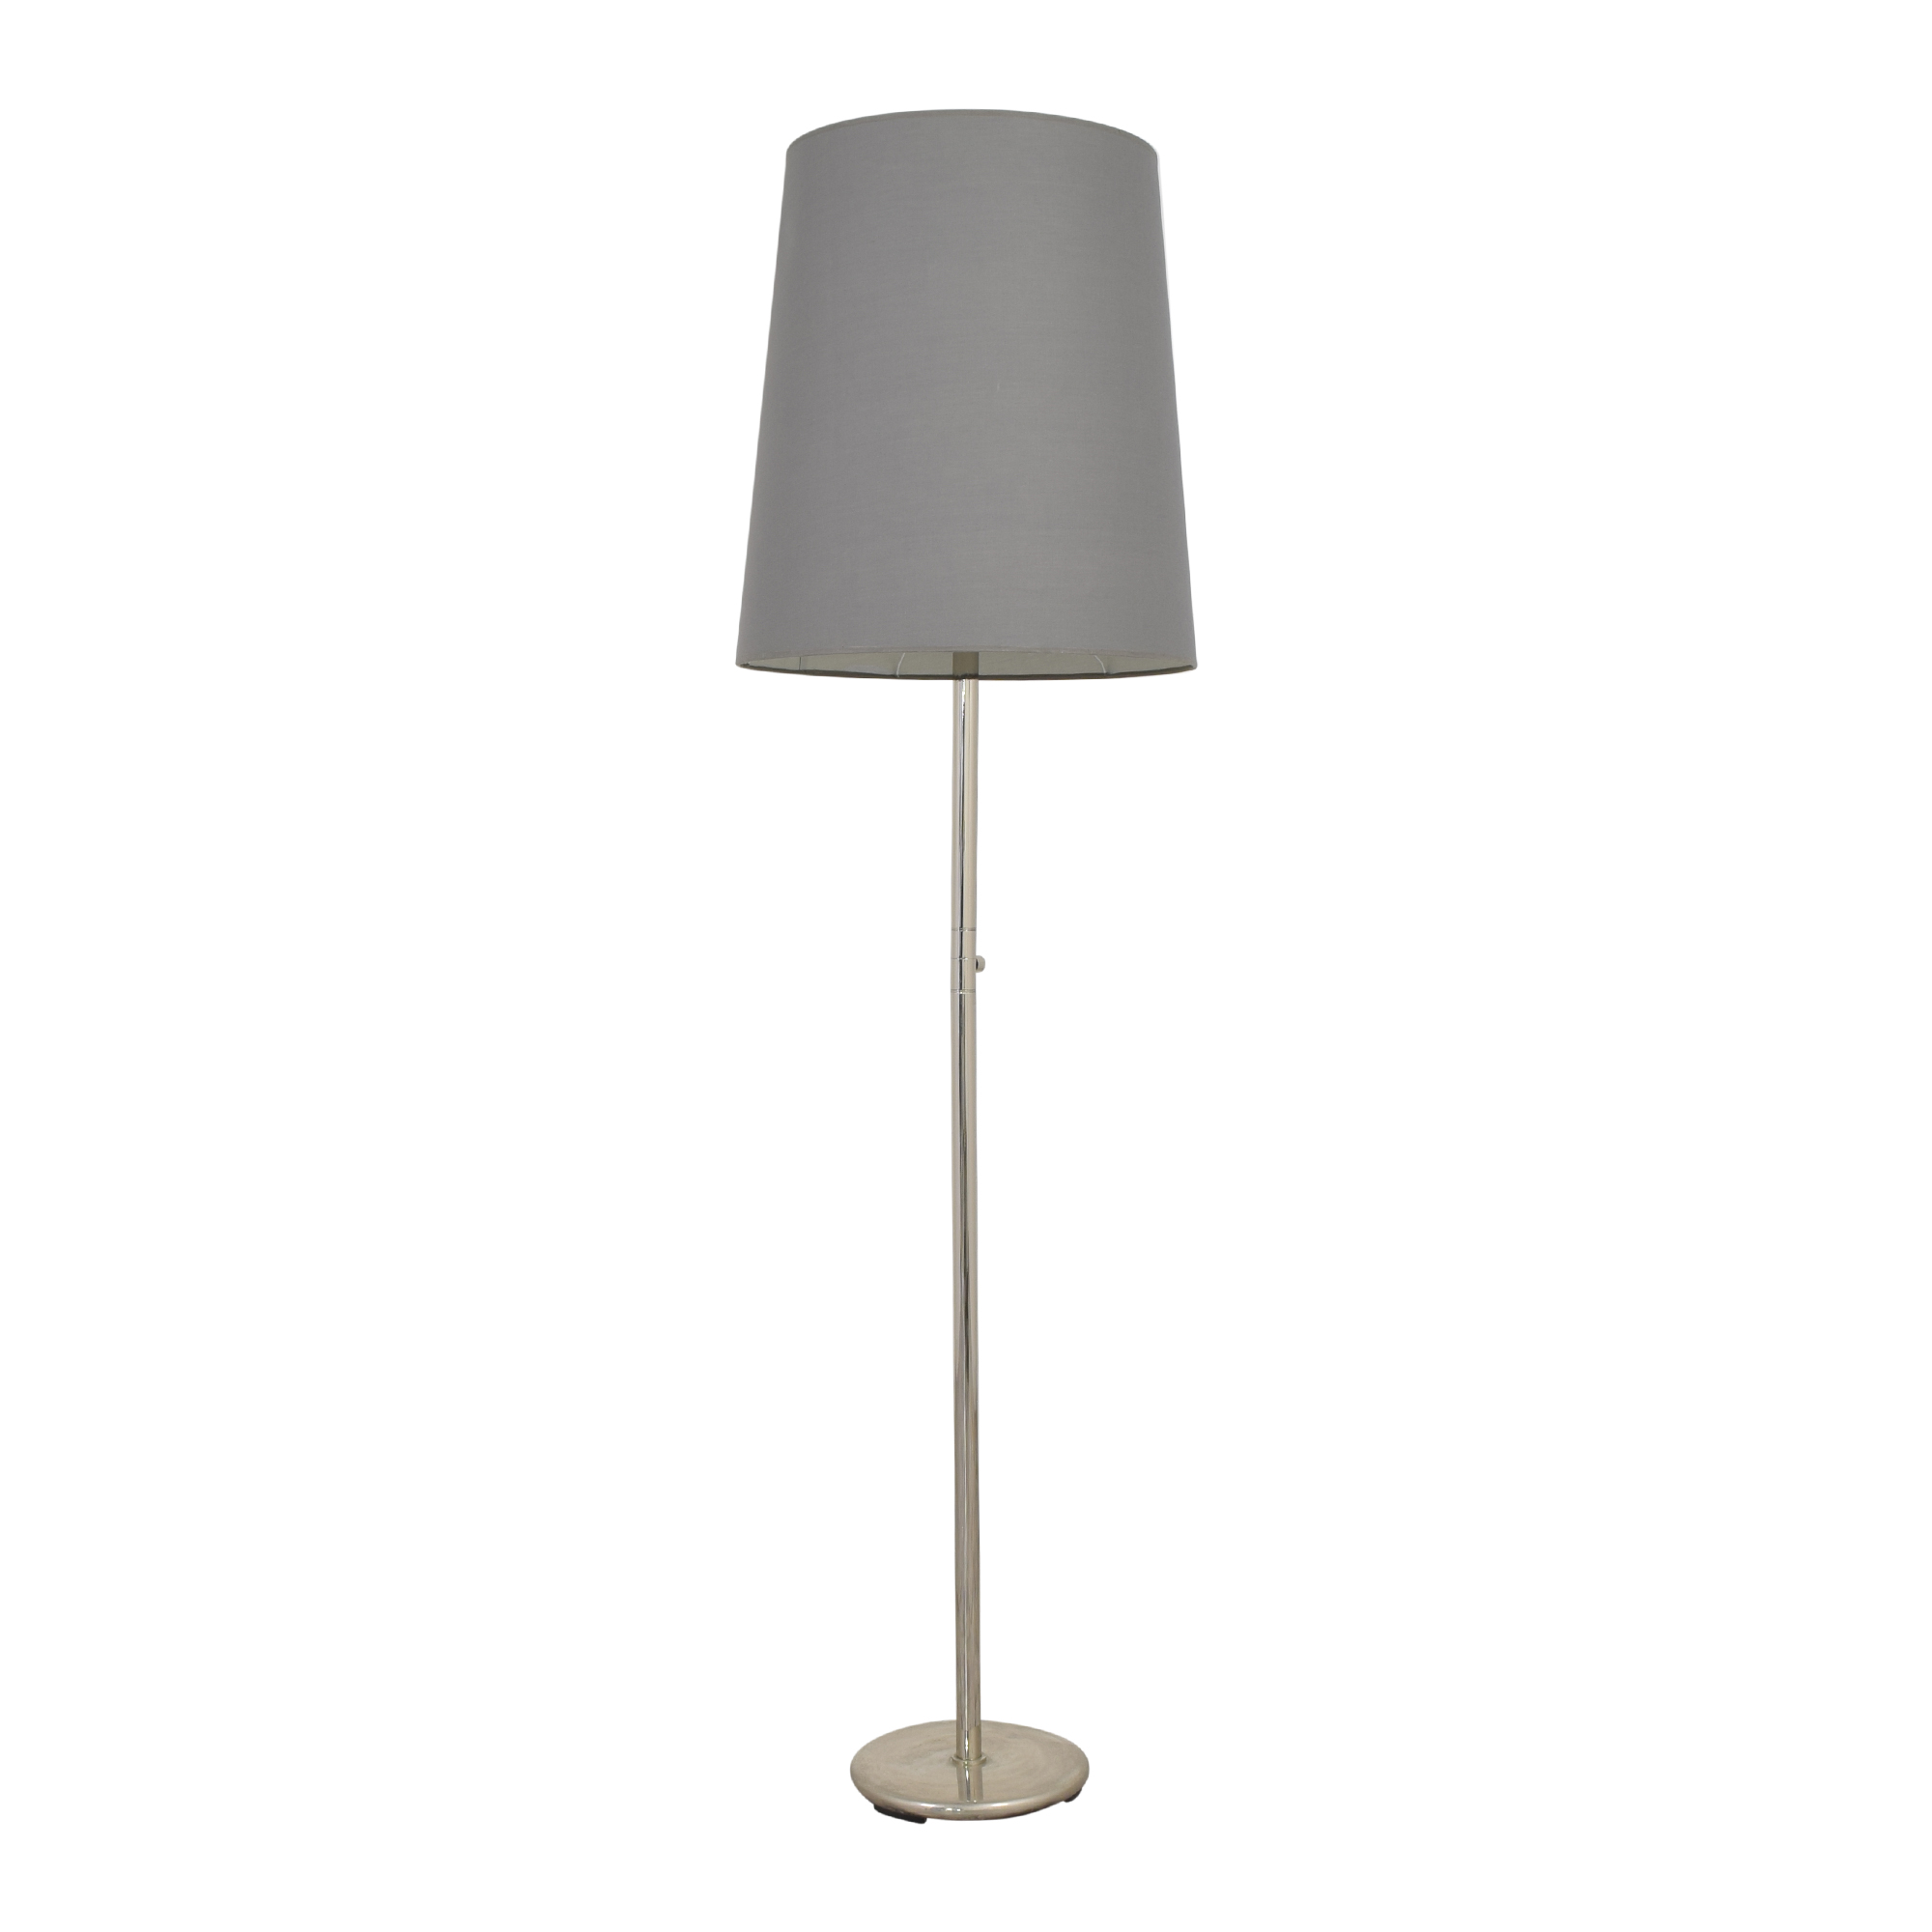 Robert Abbey Robert Abbey Buster Floor Lamp discount